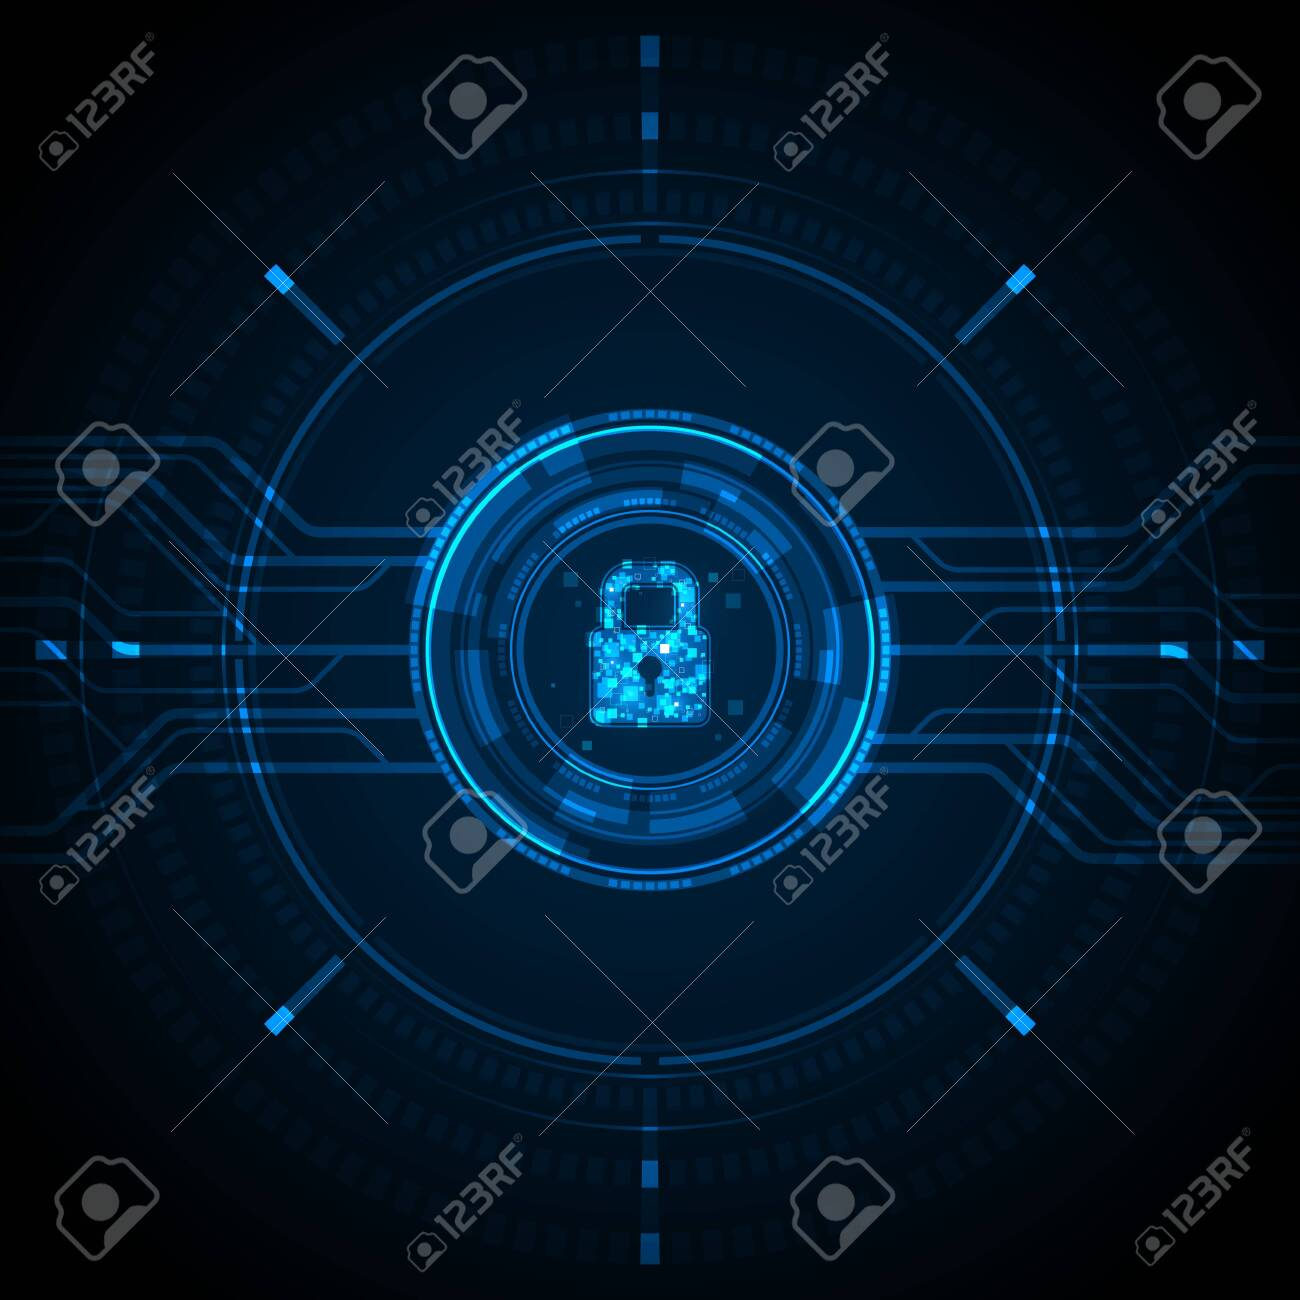 Blue light data lock icon and circle circuit digital on dark background cyber security technology concept - 157031031